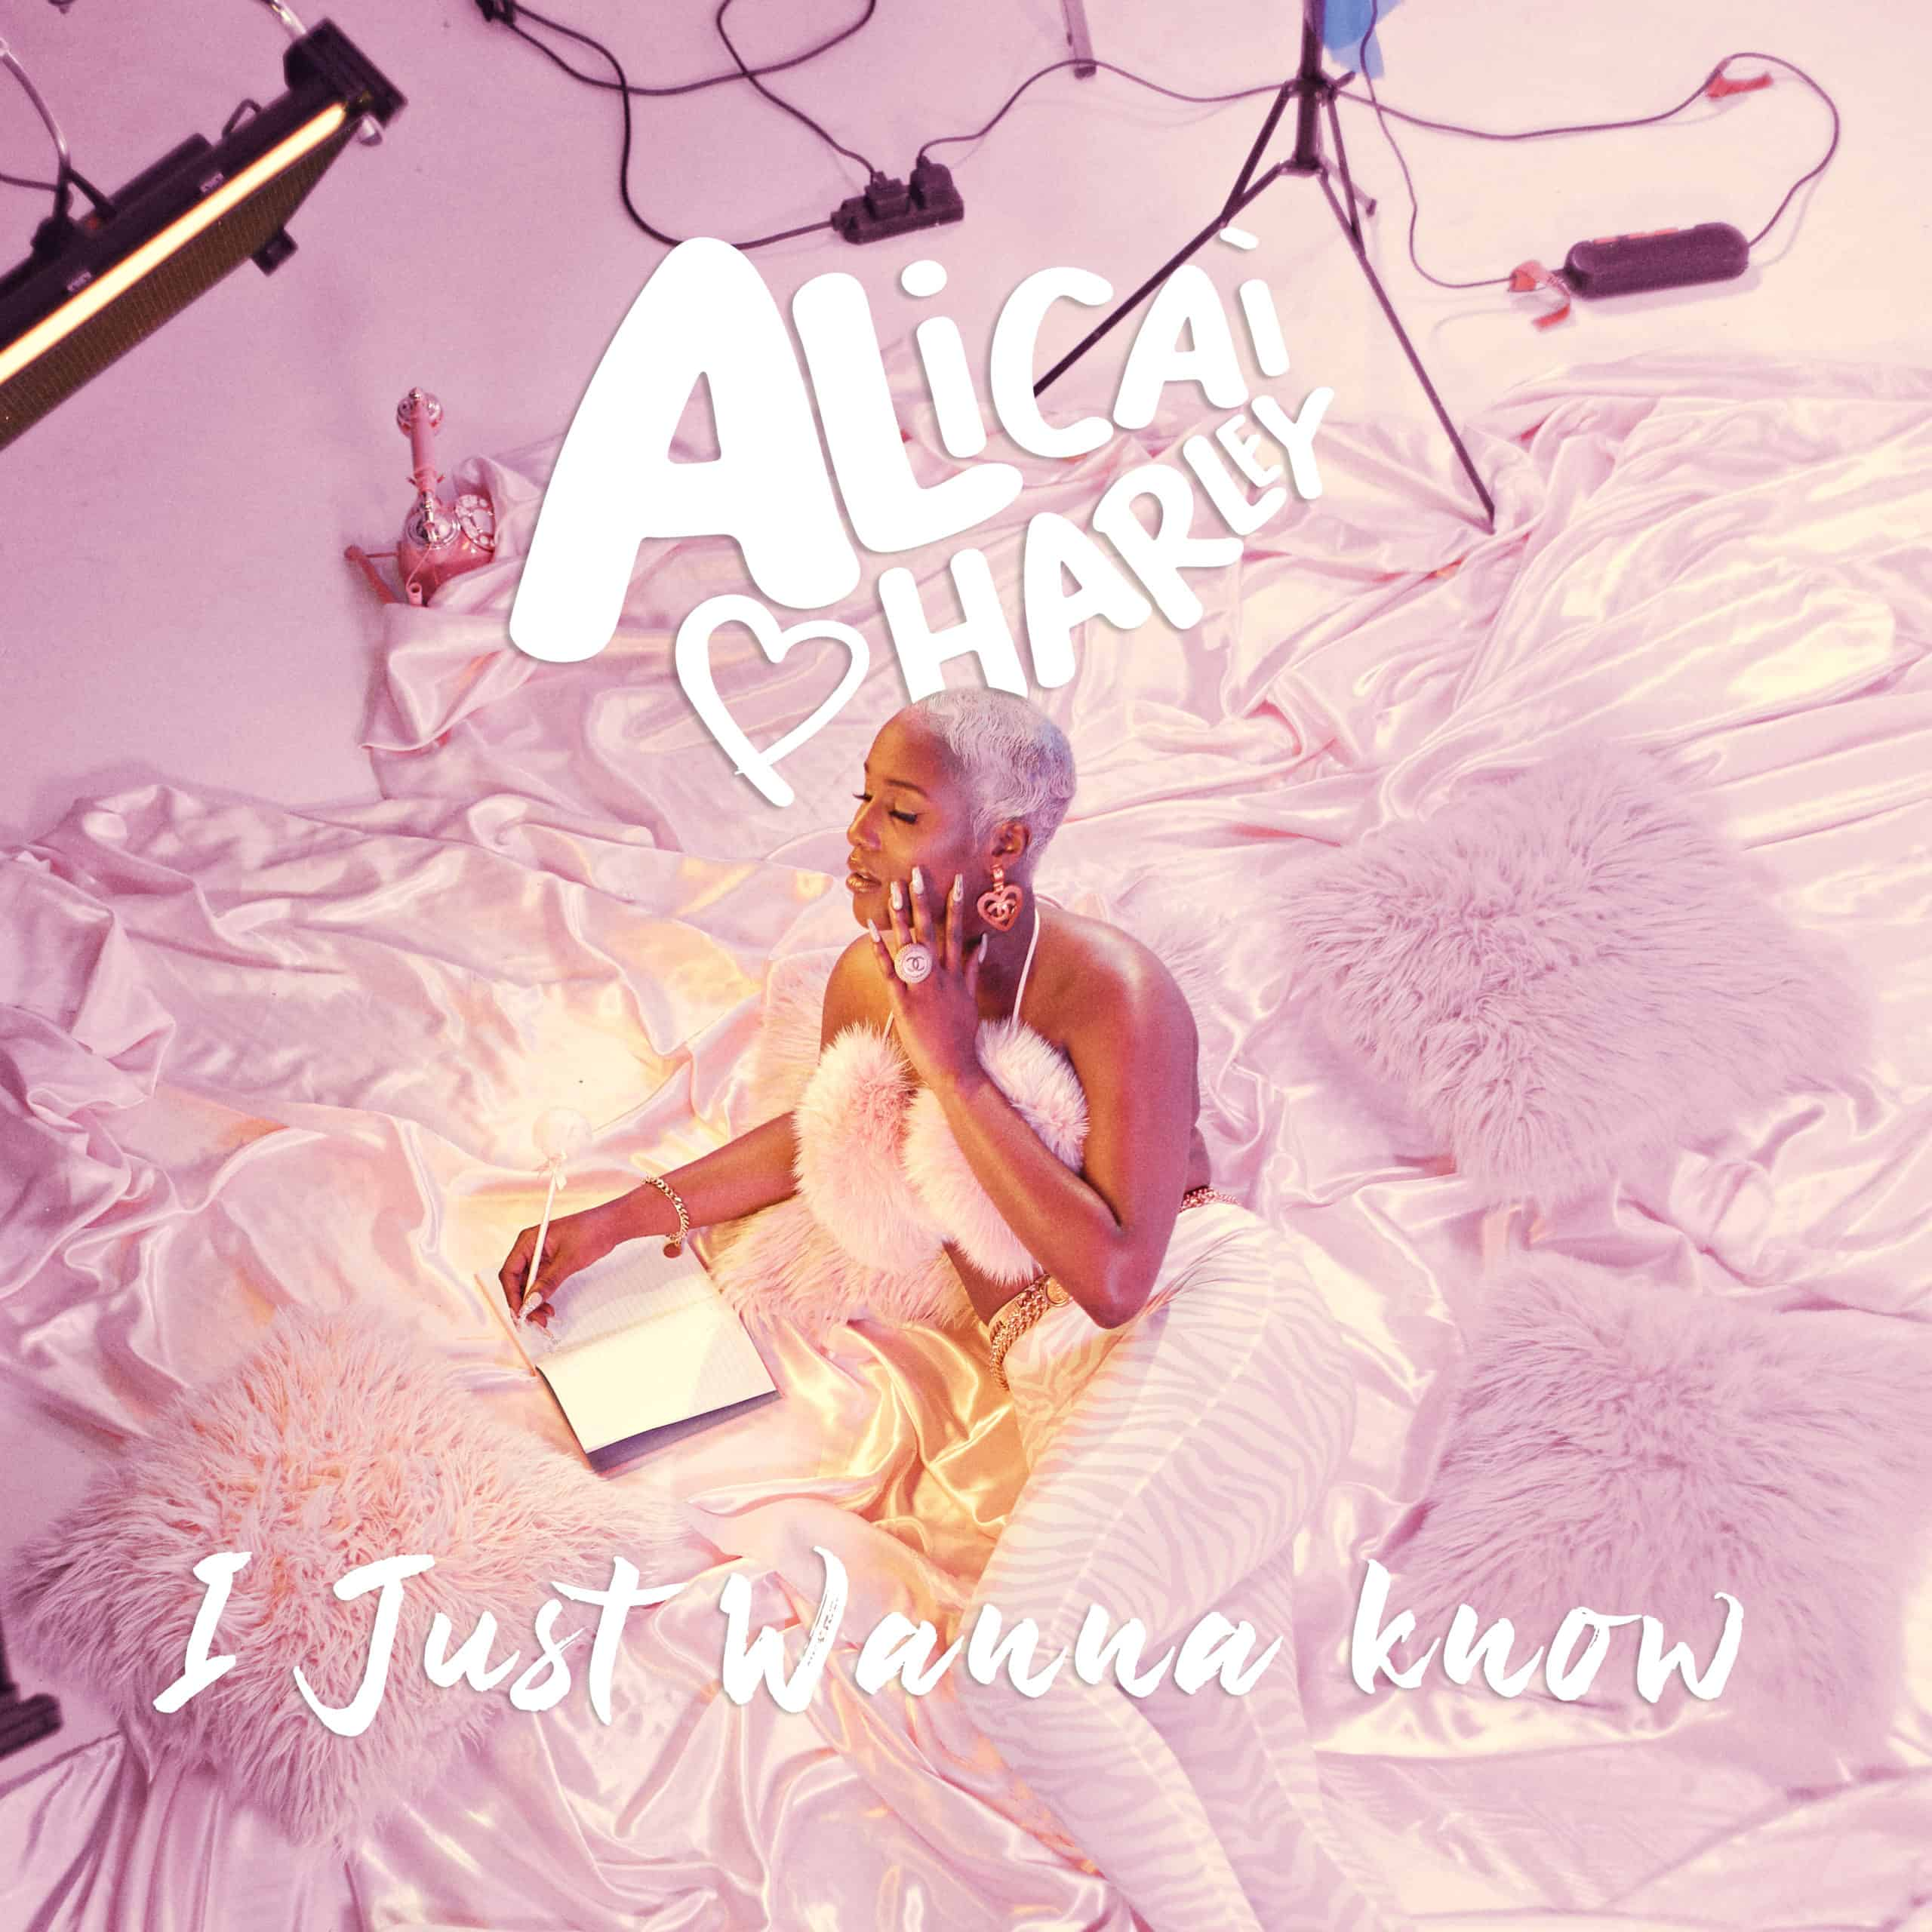 Alicai Harley - I Just Wanna Know